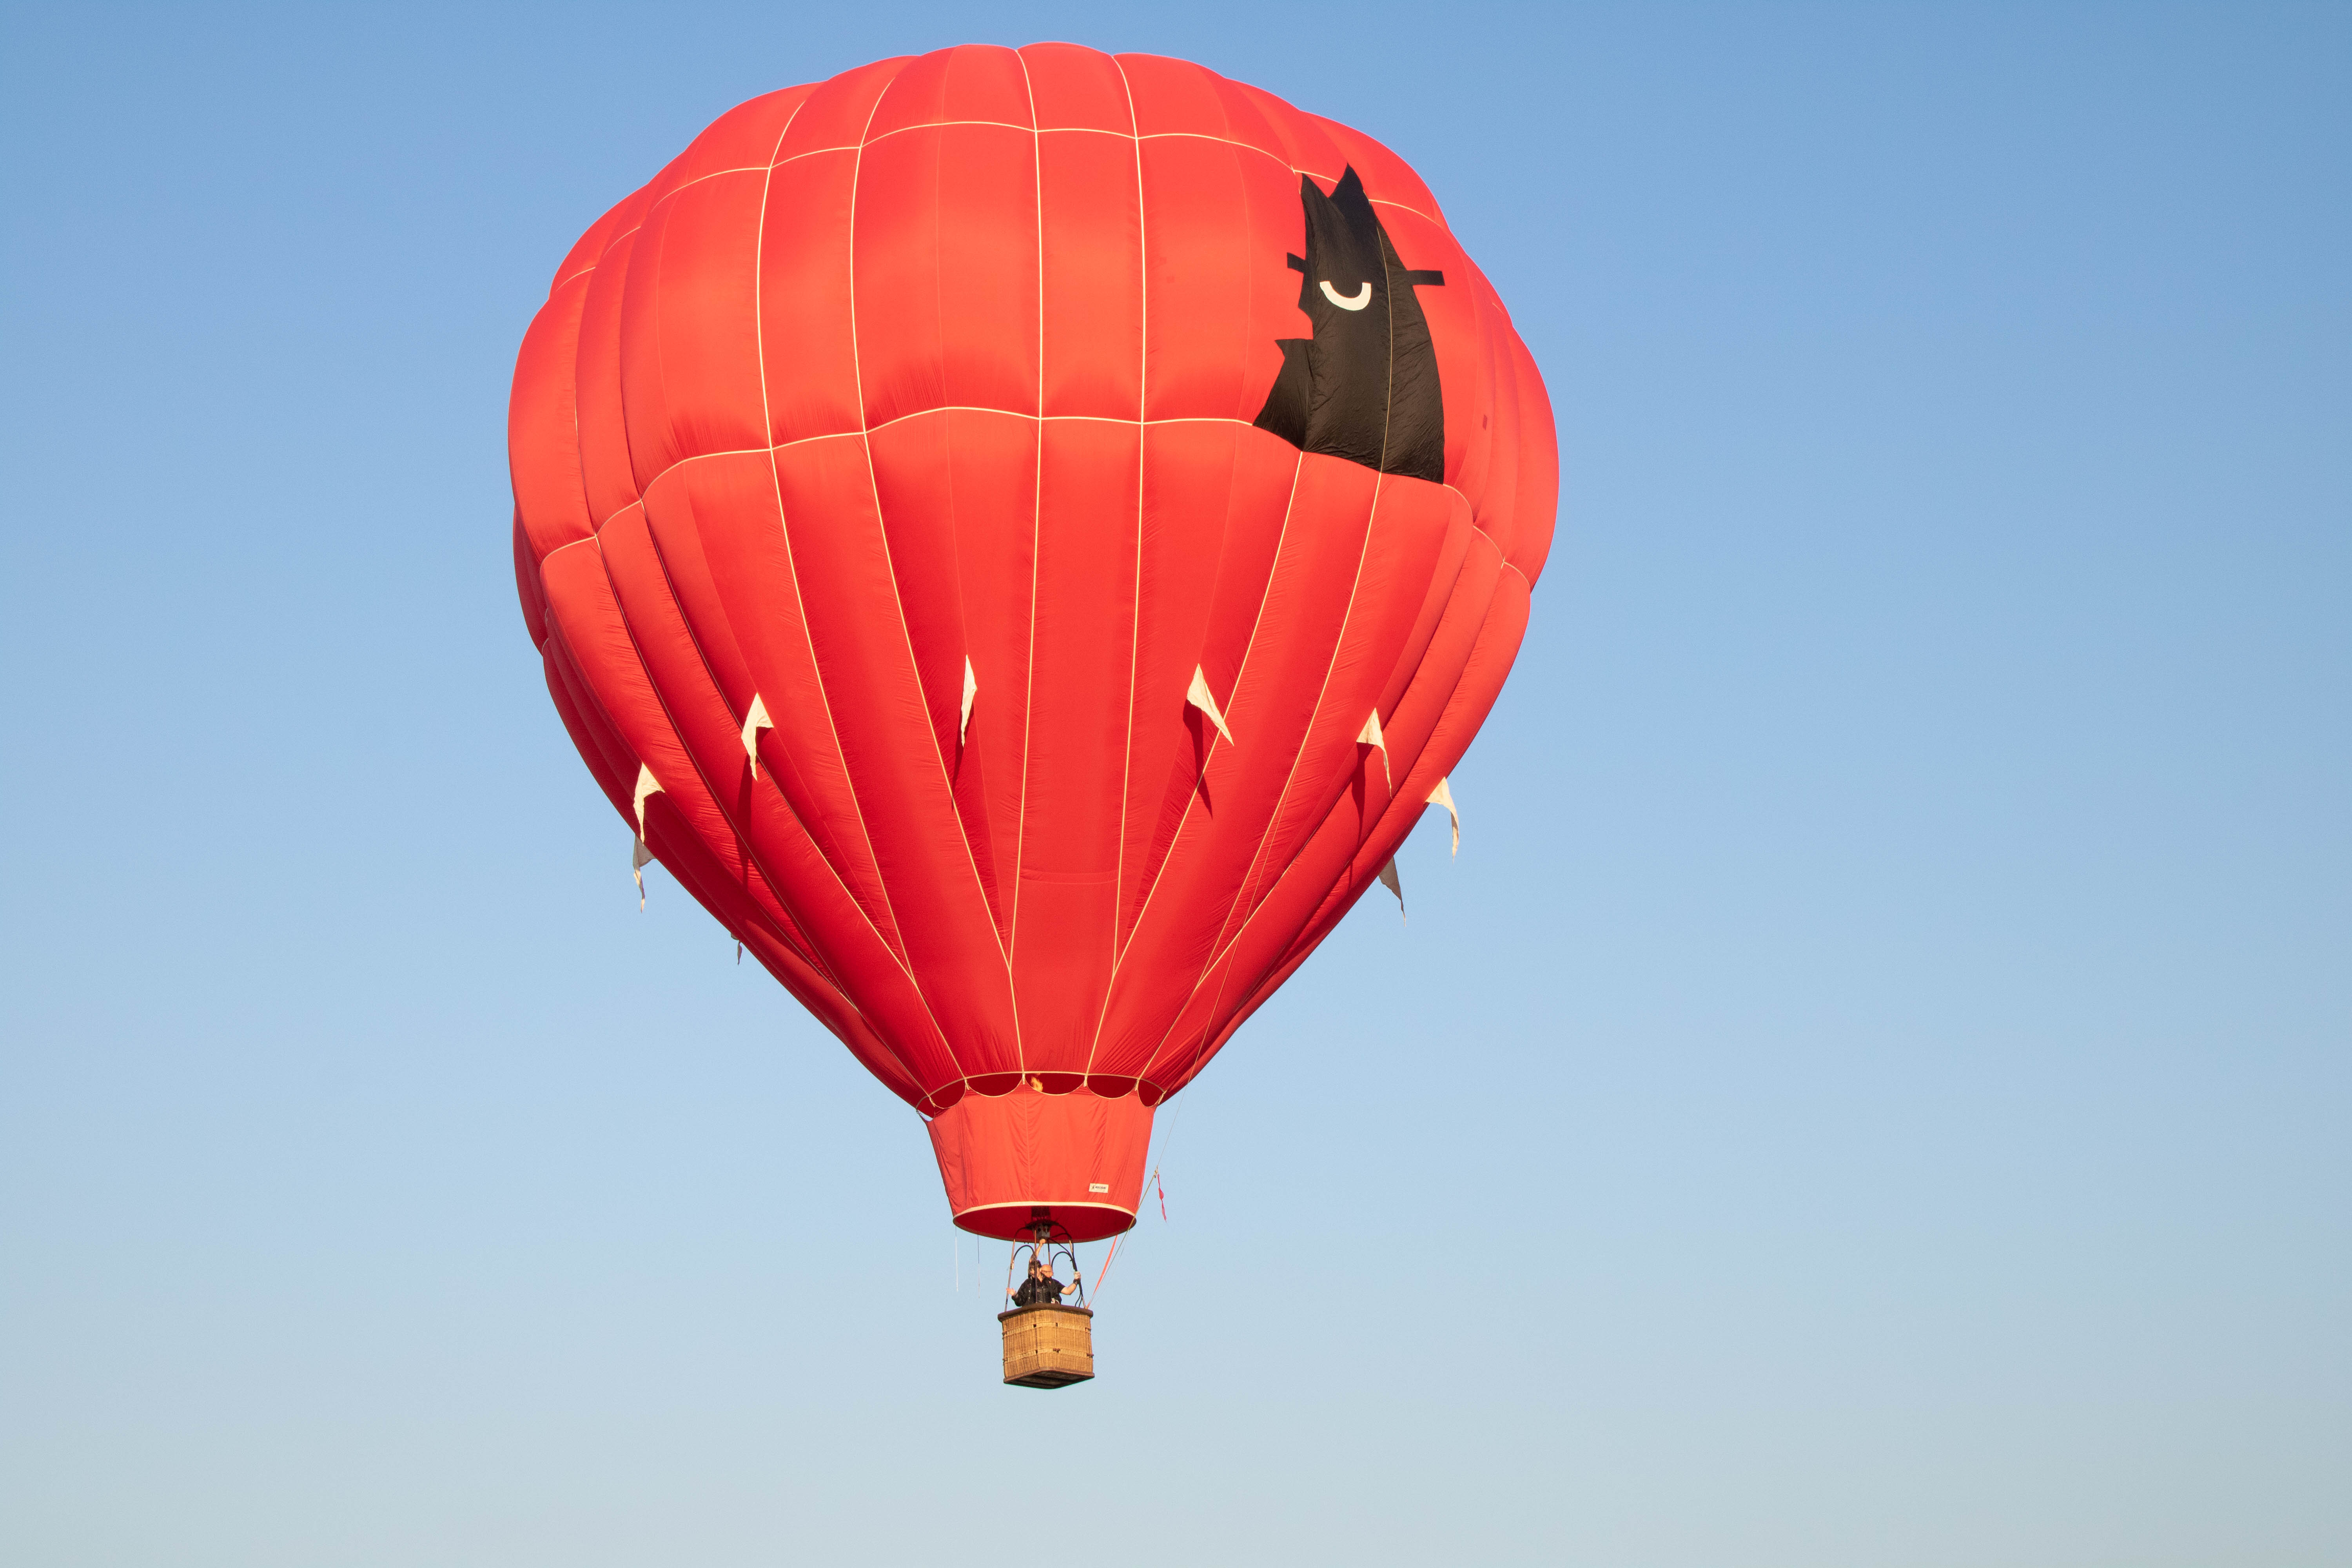 190409 Red Alert Balloon in sky flight Flight - Astonishingly, hot air balloon takes to the air after 22 year hiatus